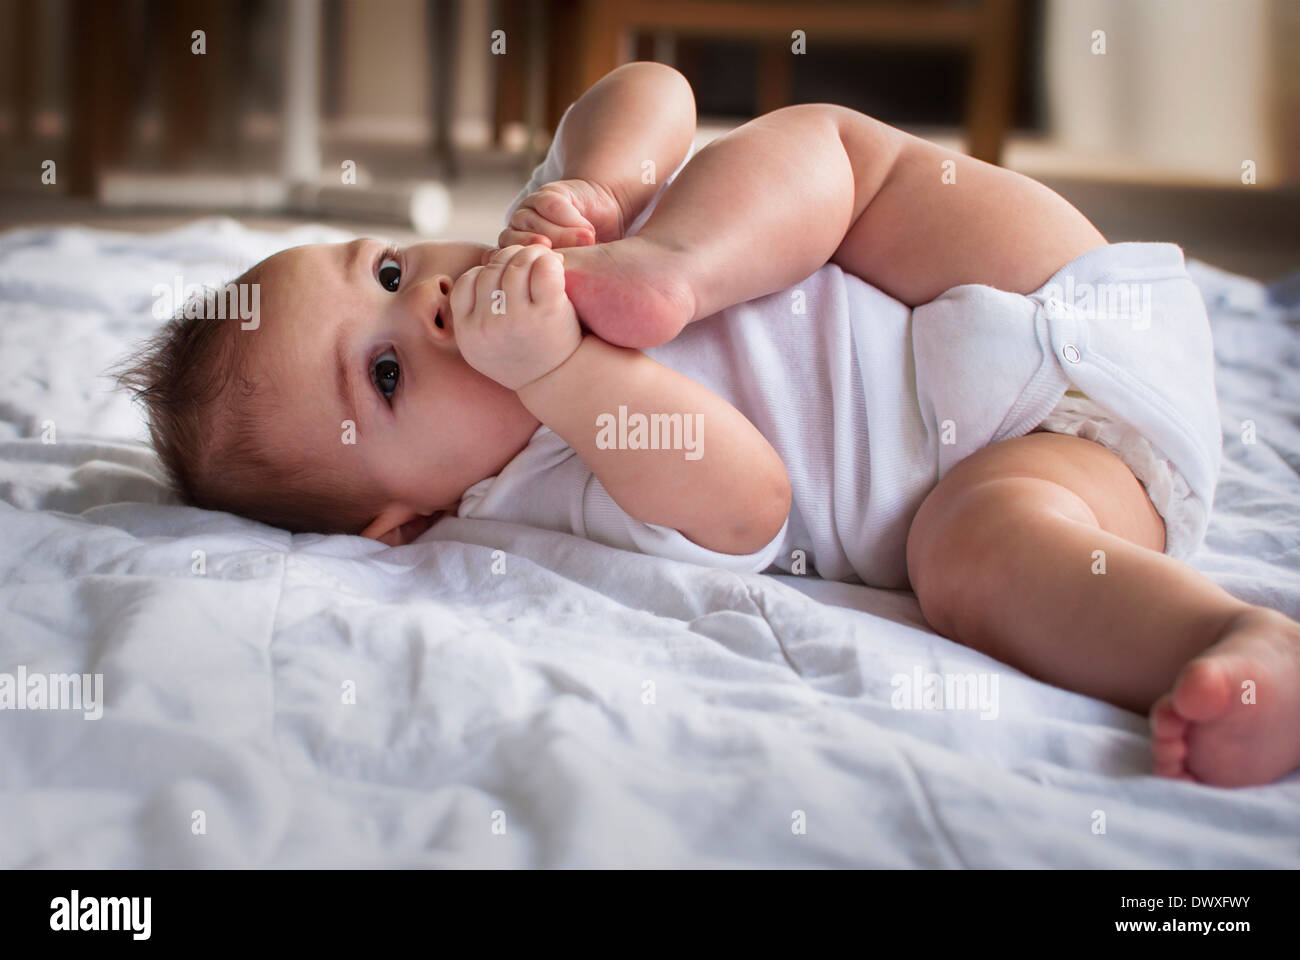 Baby with her feet in her mouth - Stock Image